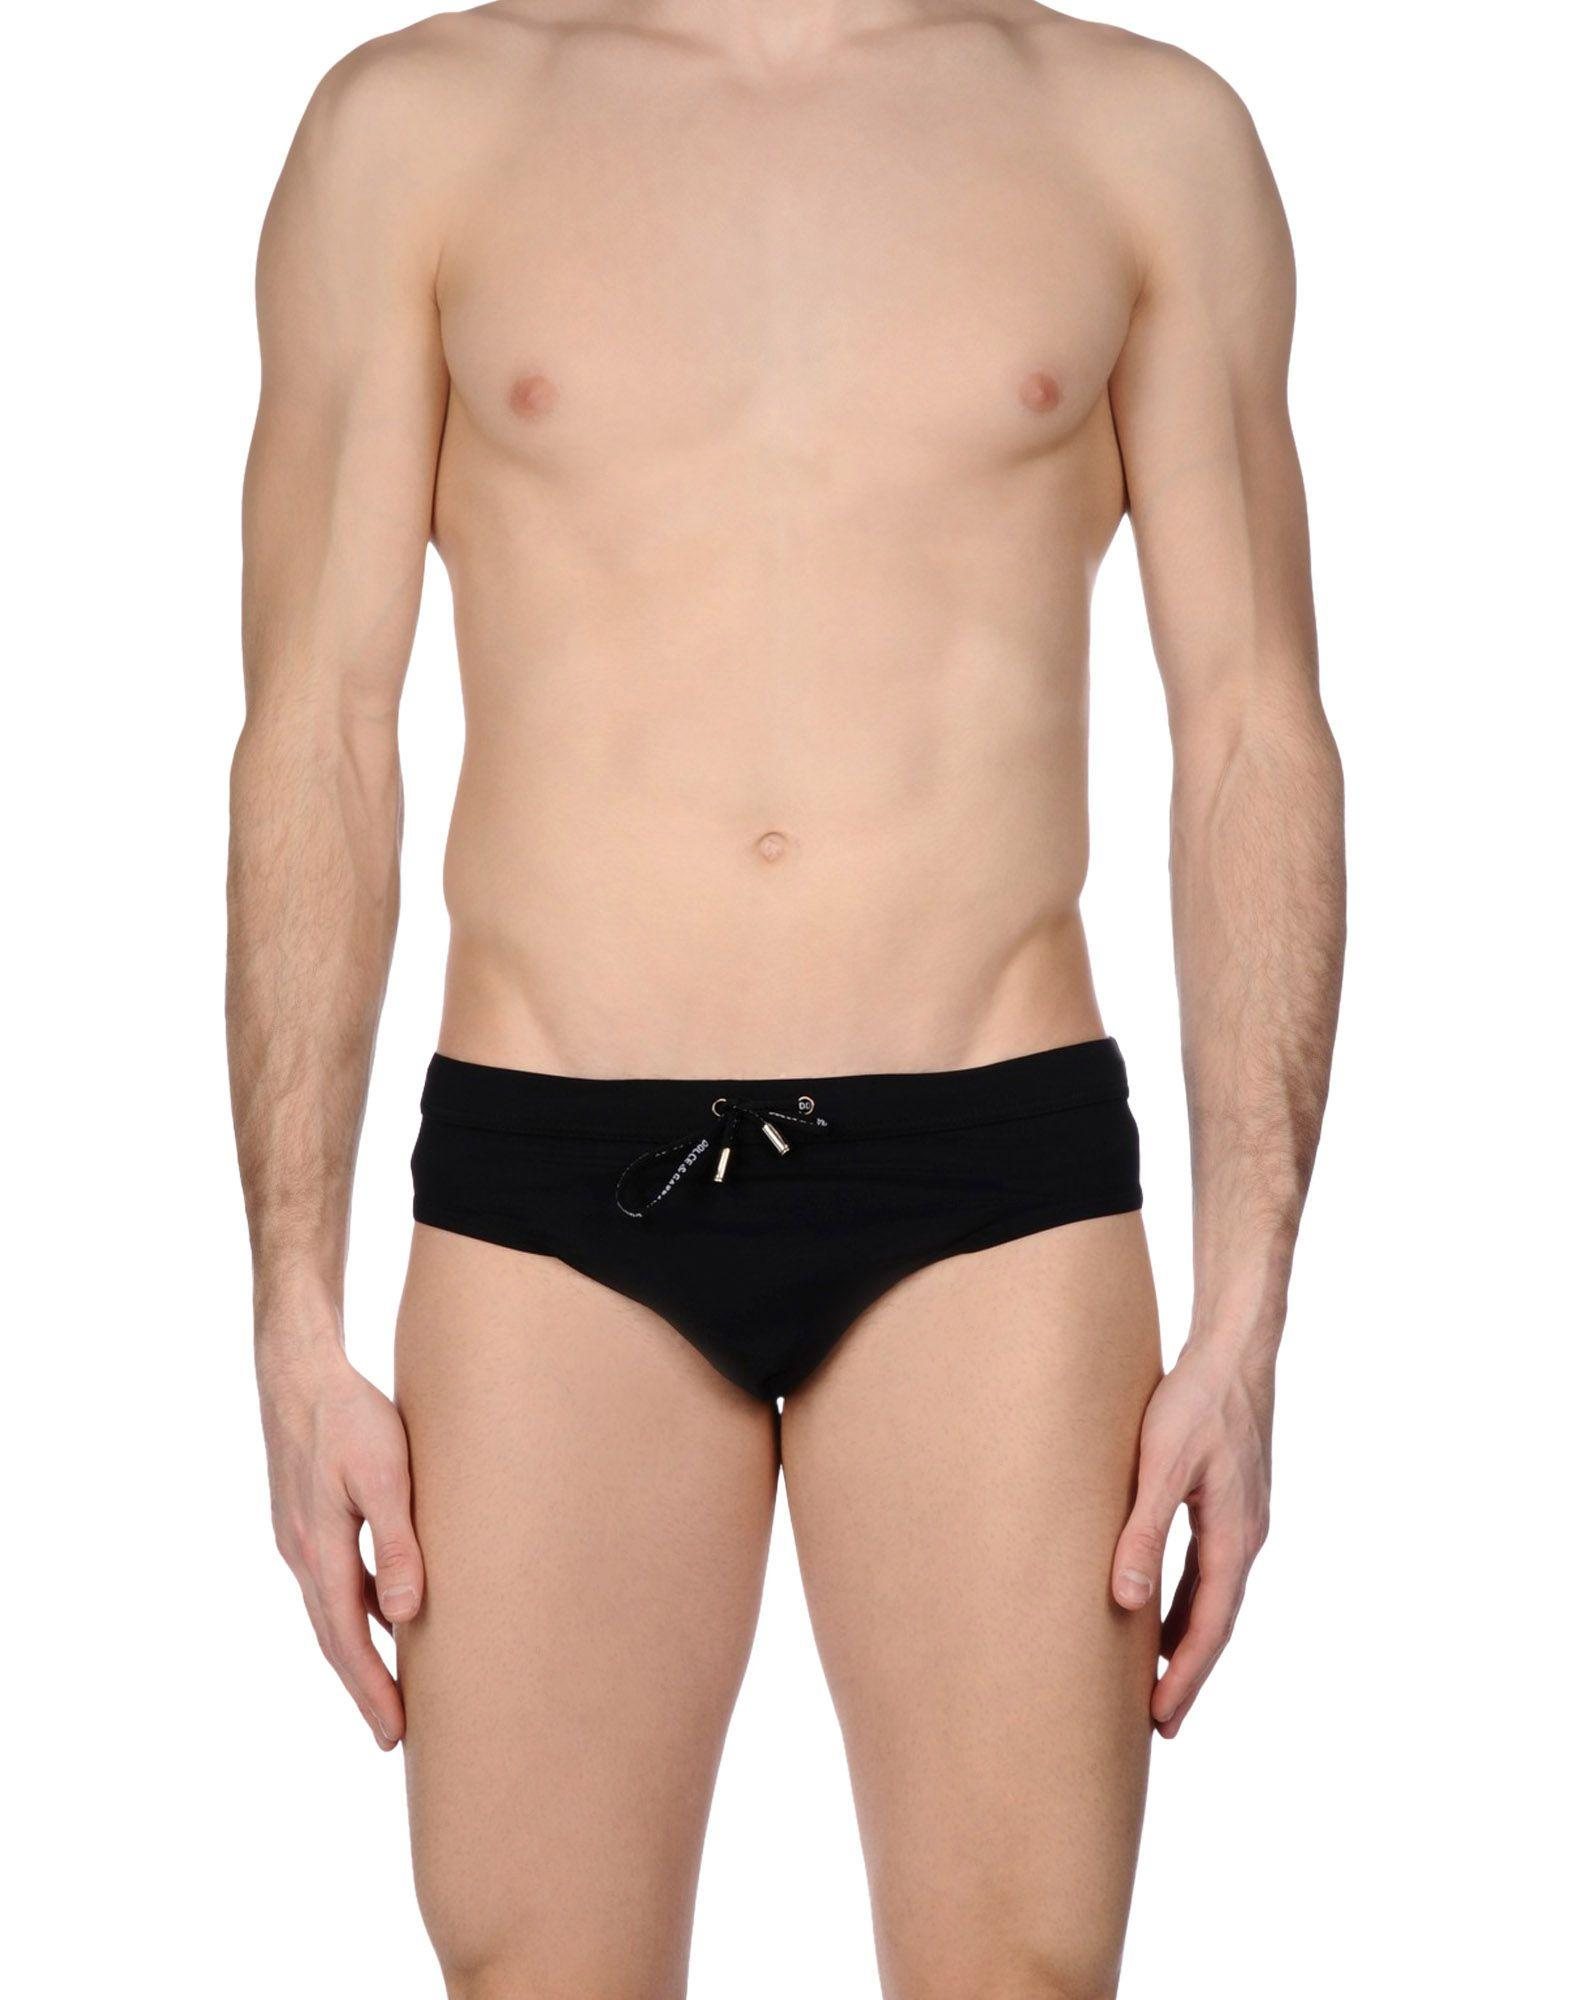 Dolce & gabbana Swim Brief in Black for Men